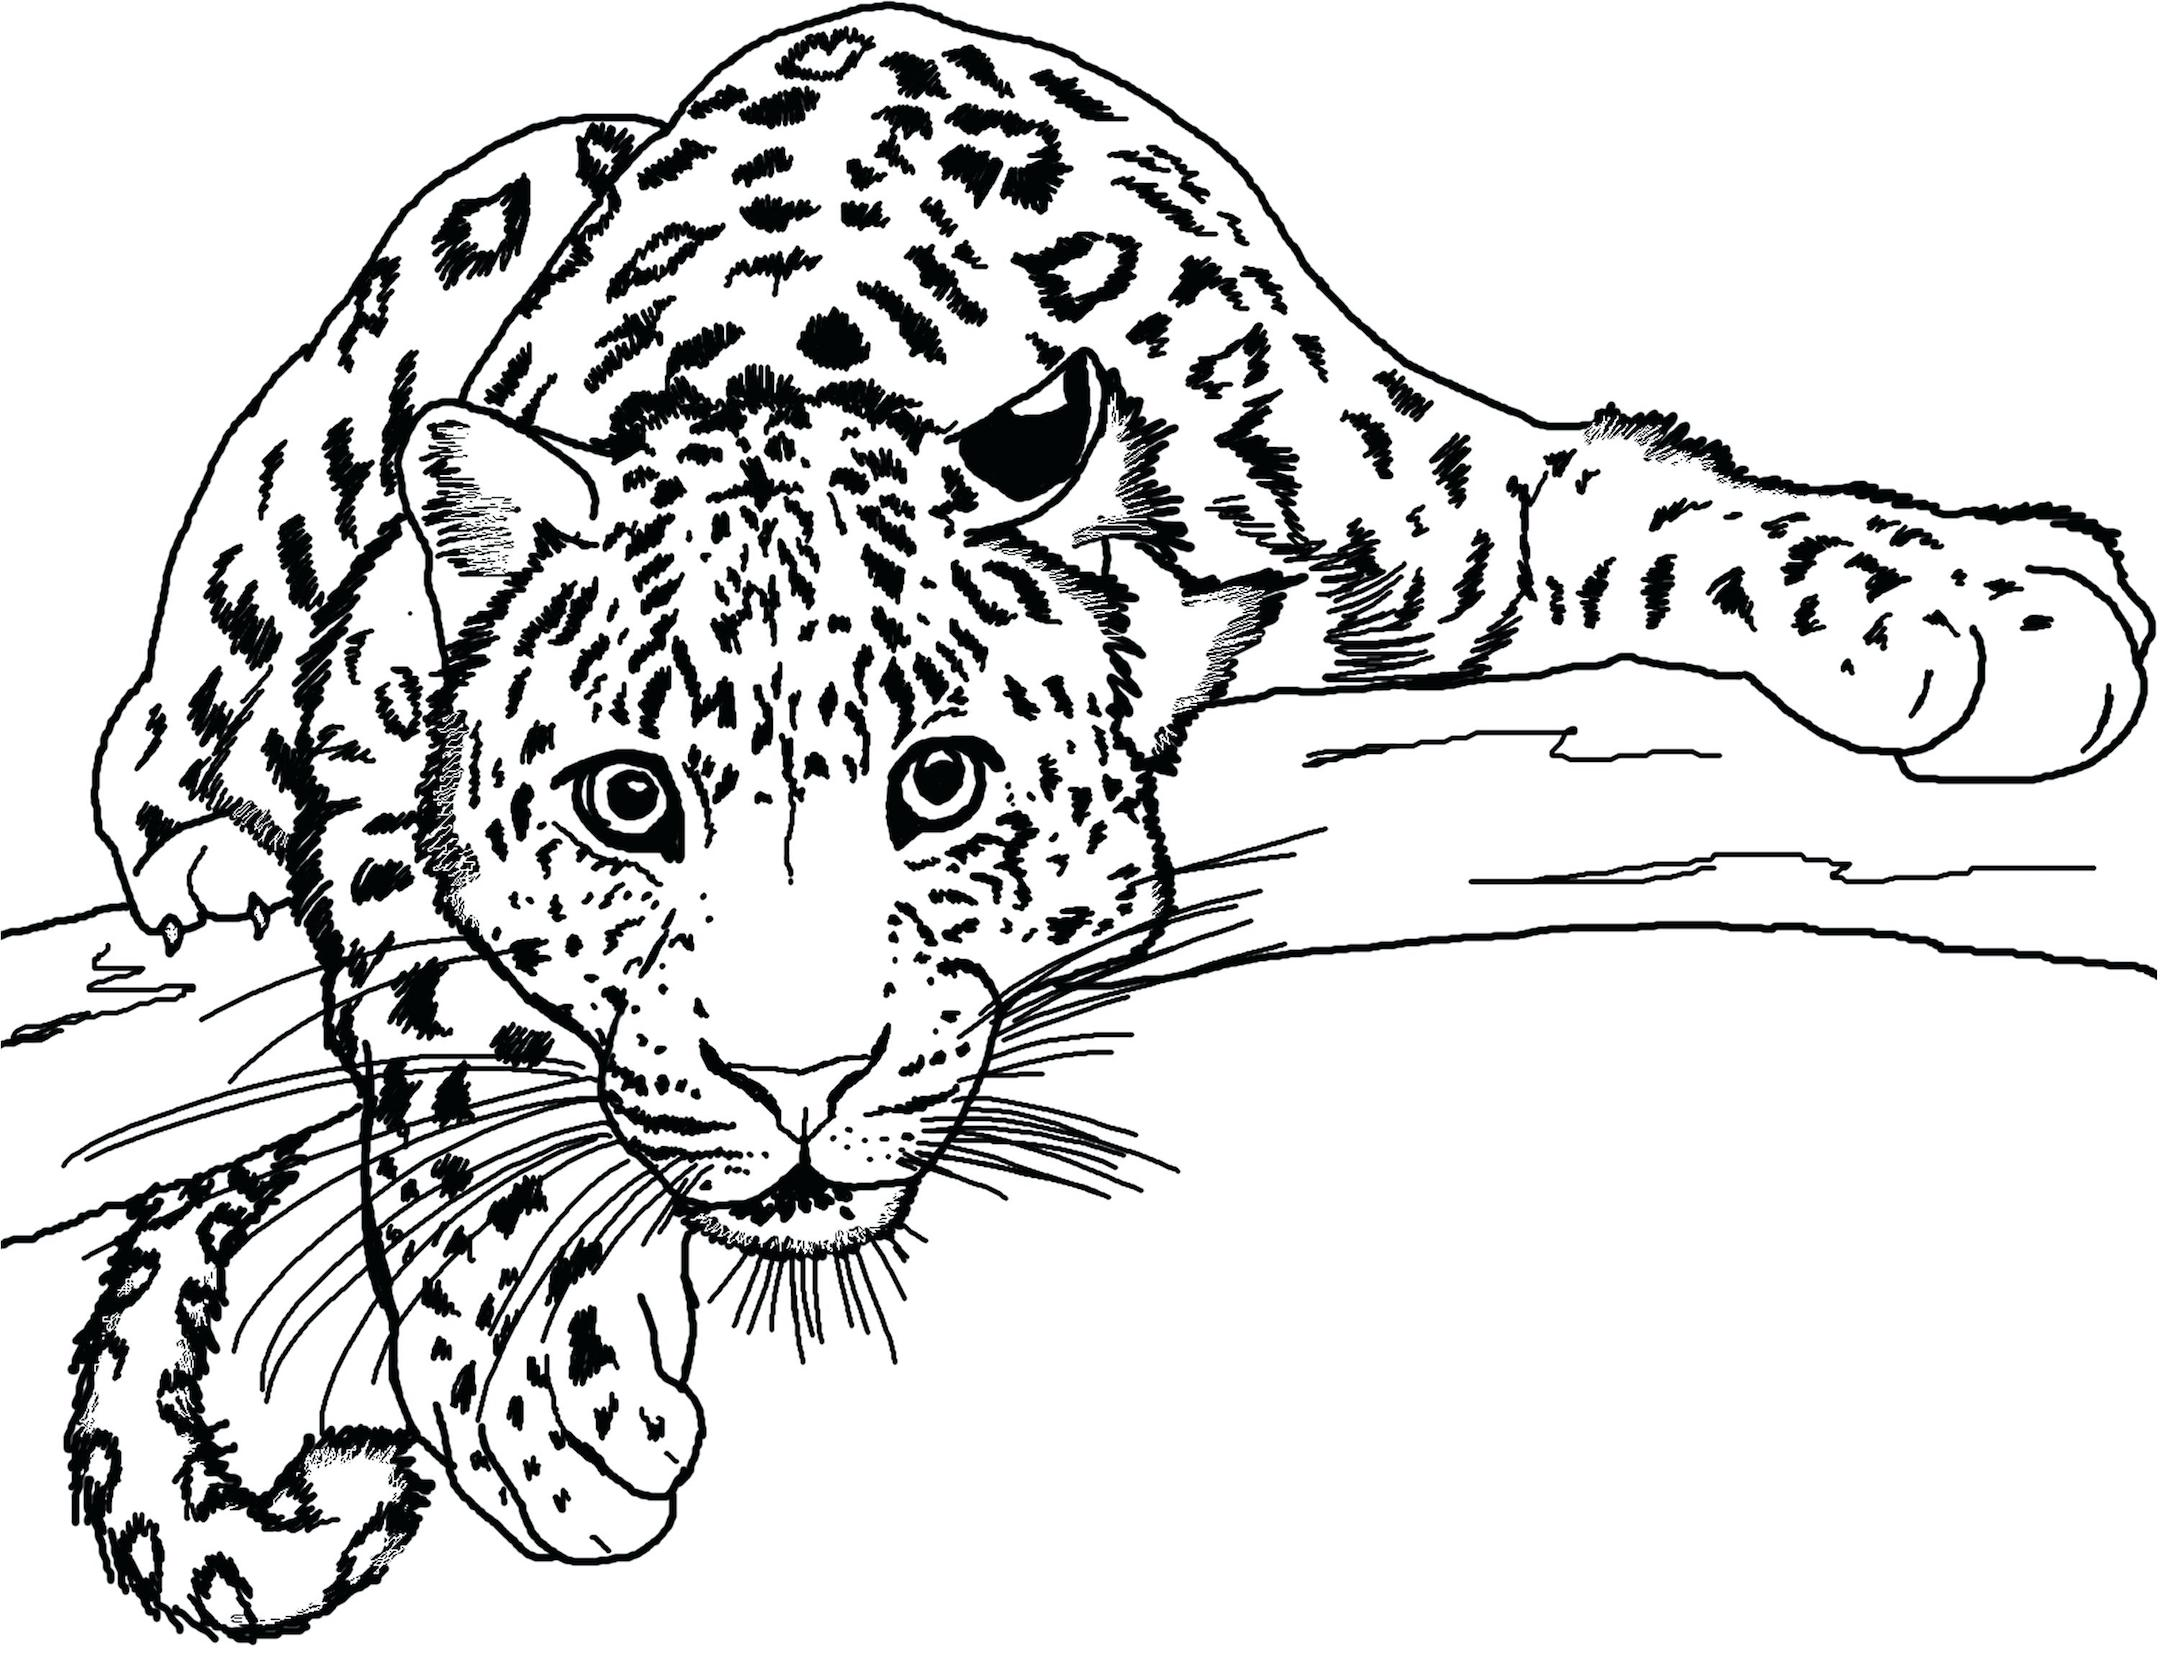 Top 10 Wild Cat Coloring Pages And More Free Printable Coloring Themes